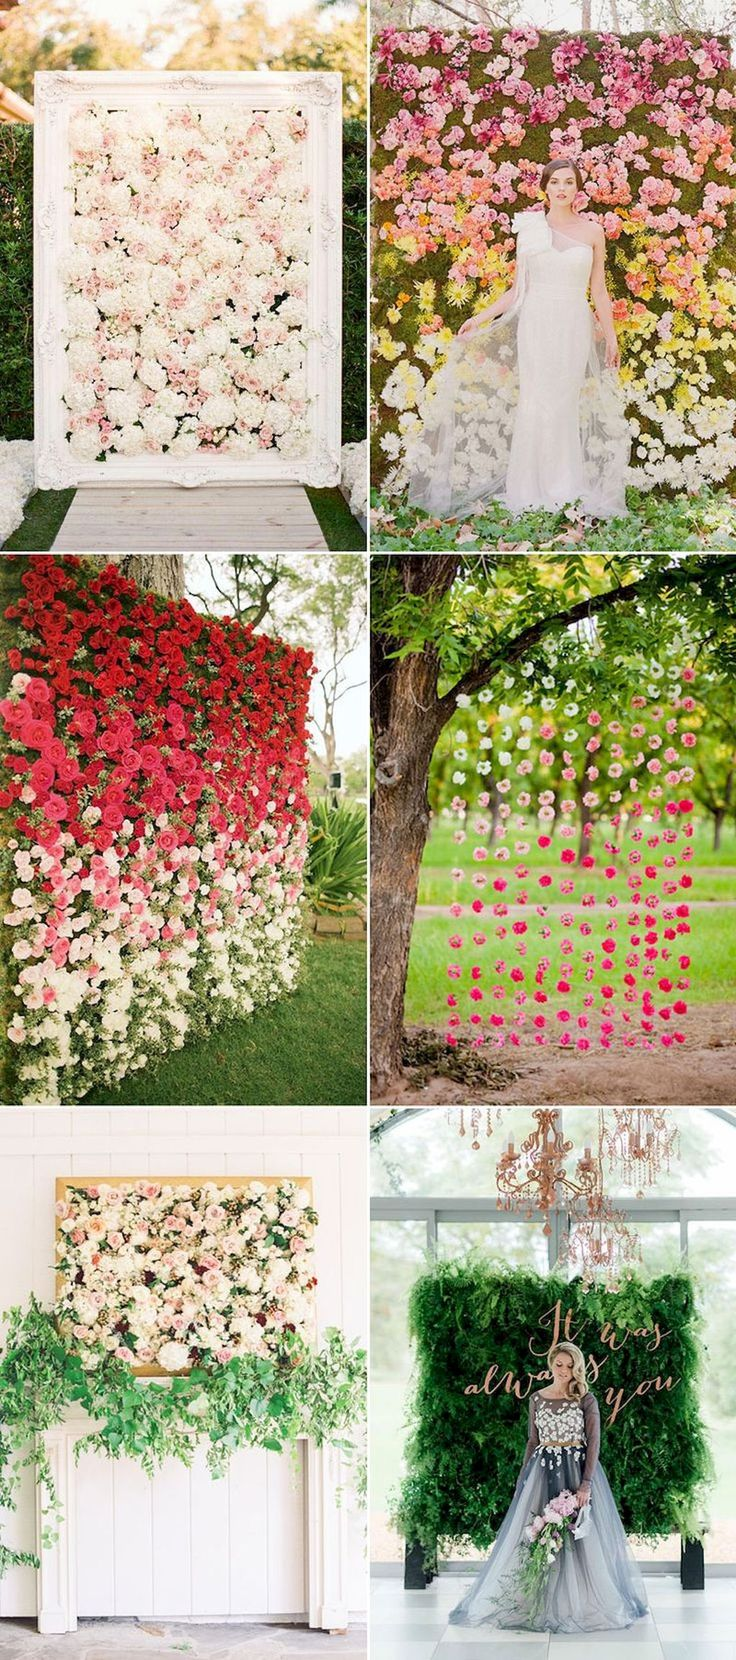 Gorgeous 36 Amazing Fall Outdoor Wedding Ideas on a Budget https://bitecloth.com/2017/06/23/36-amazing-fall-outdoor-wedding-ideas-budget/